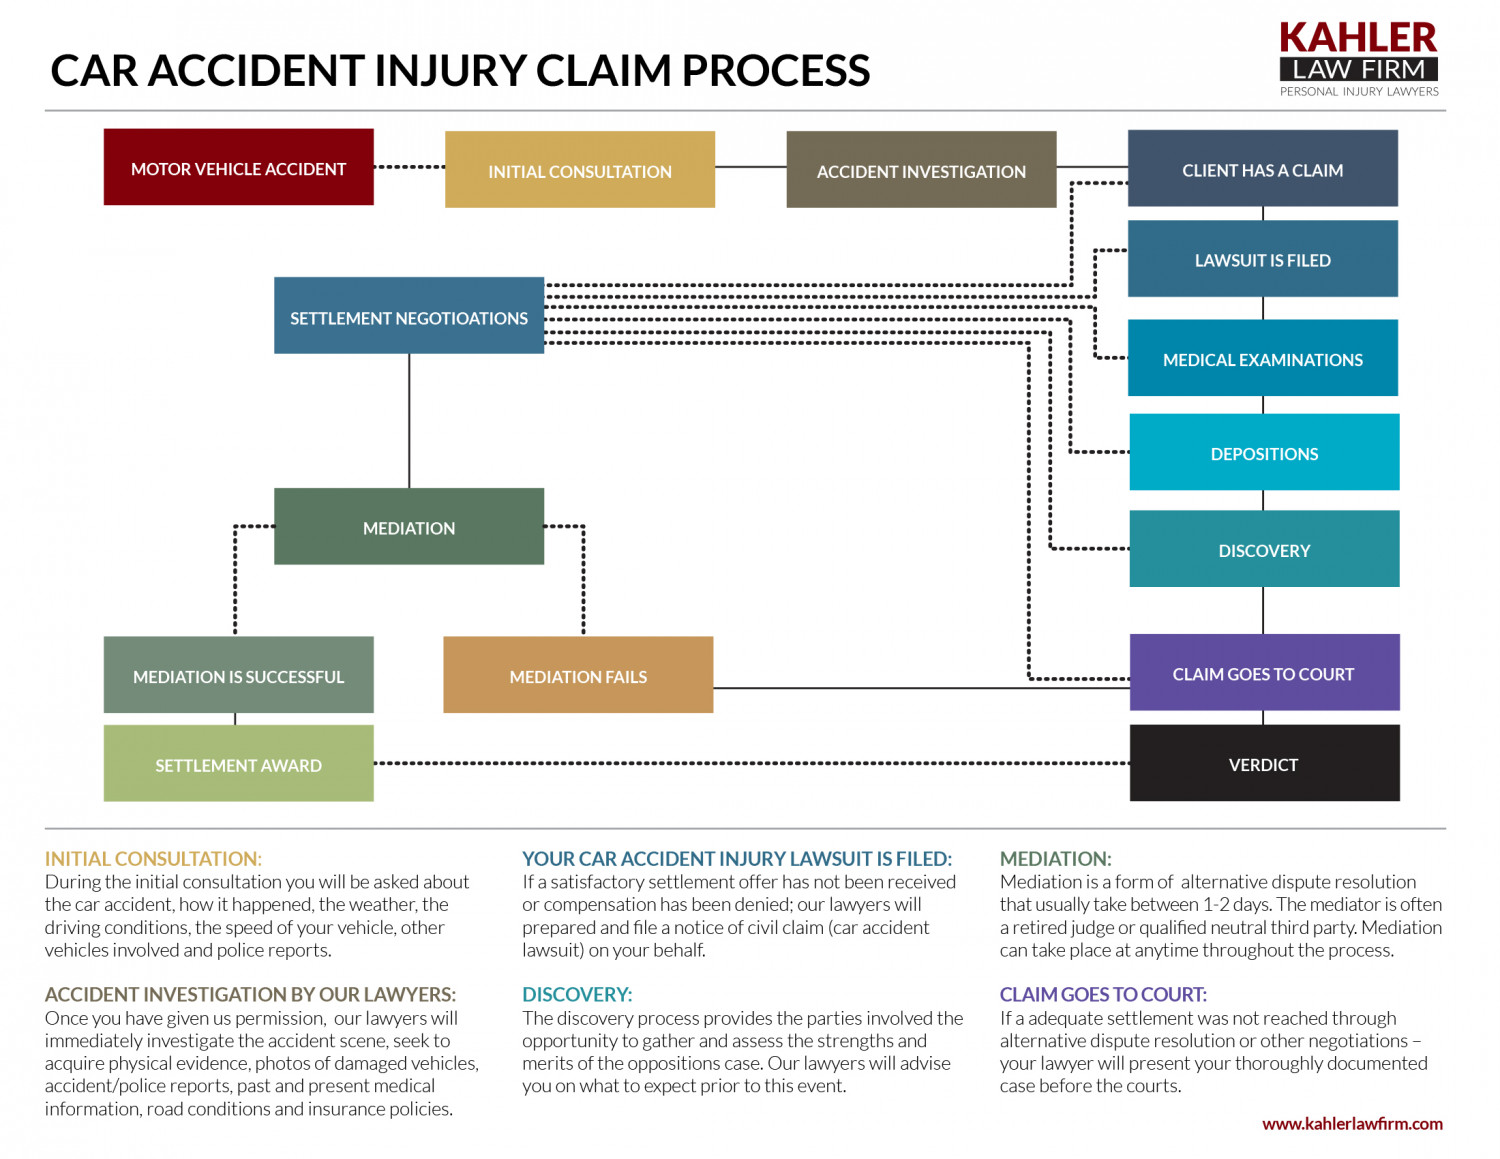 What To Report On Car Accident Insurance